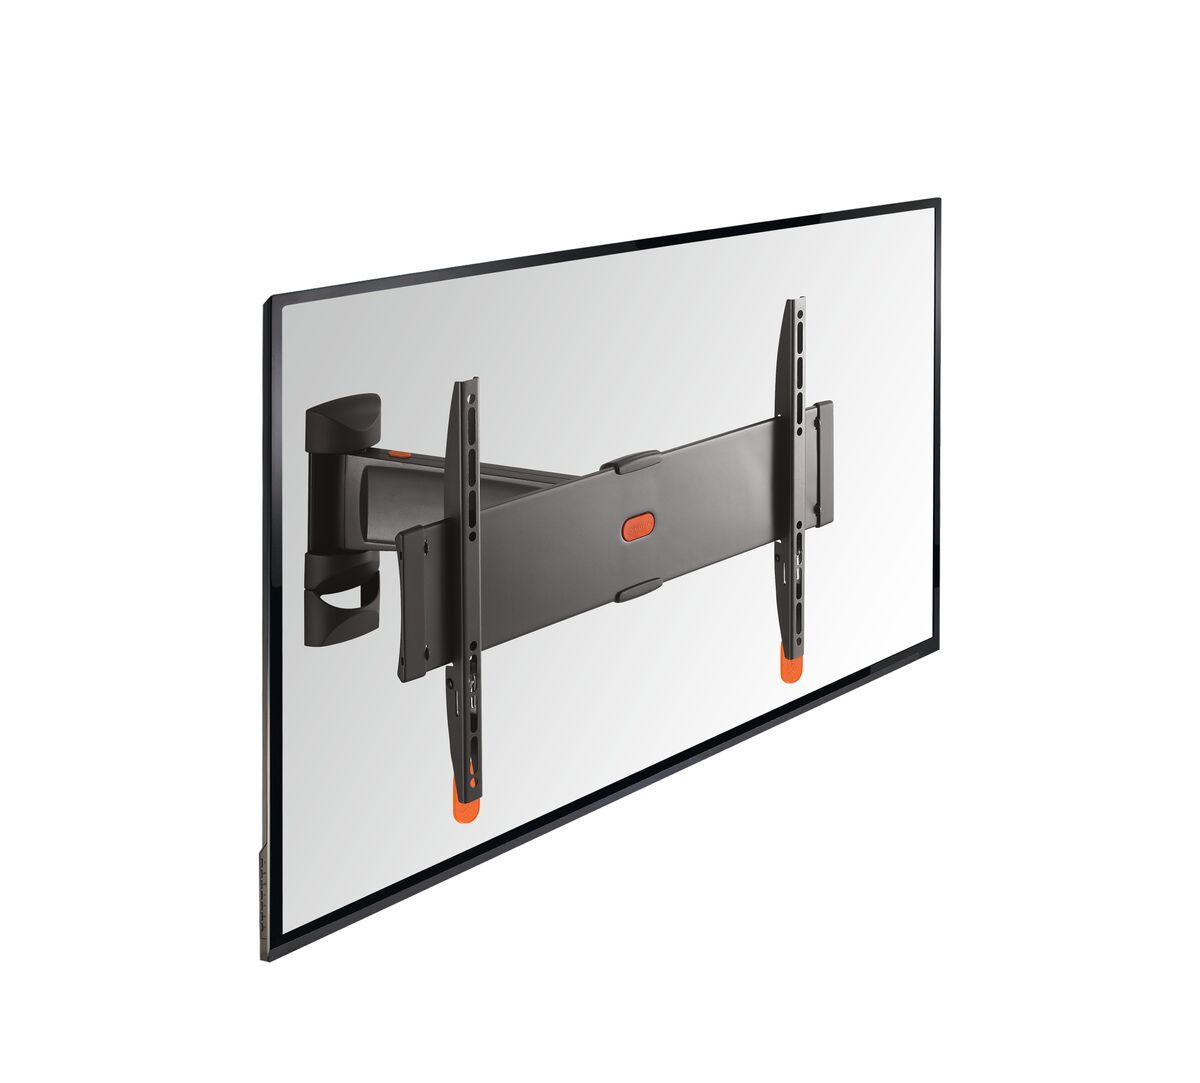 Vogel's BASE 25 M Full-Motion TV Wall Mount - Suitable for Motion (up to 120°) - Suitable for Product